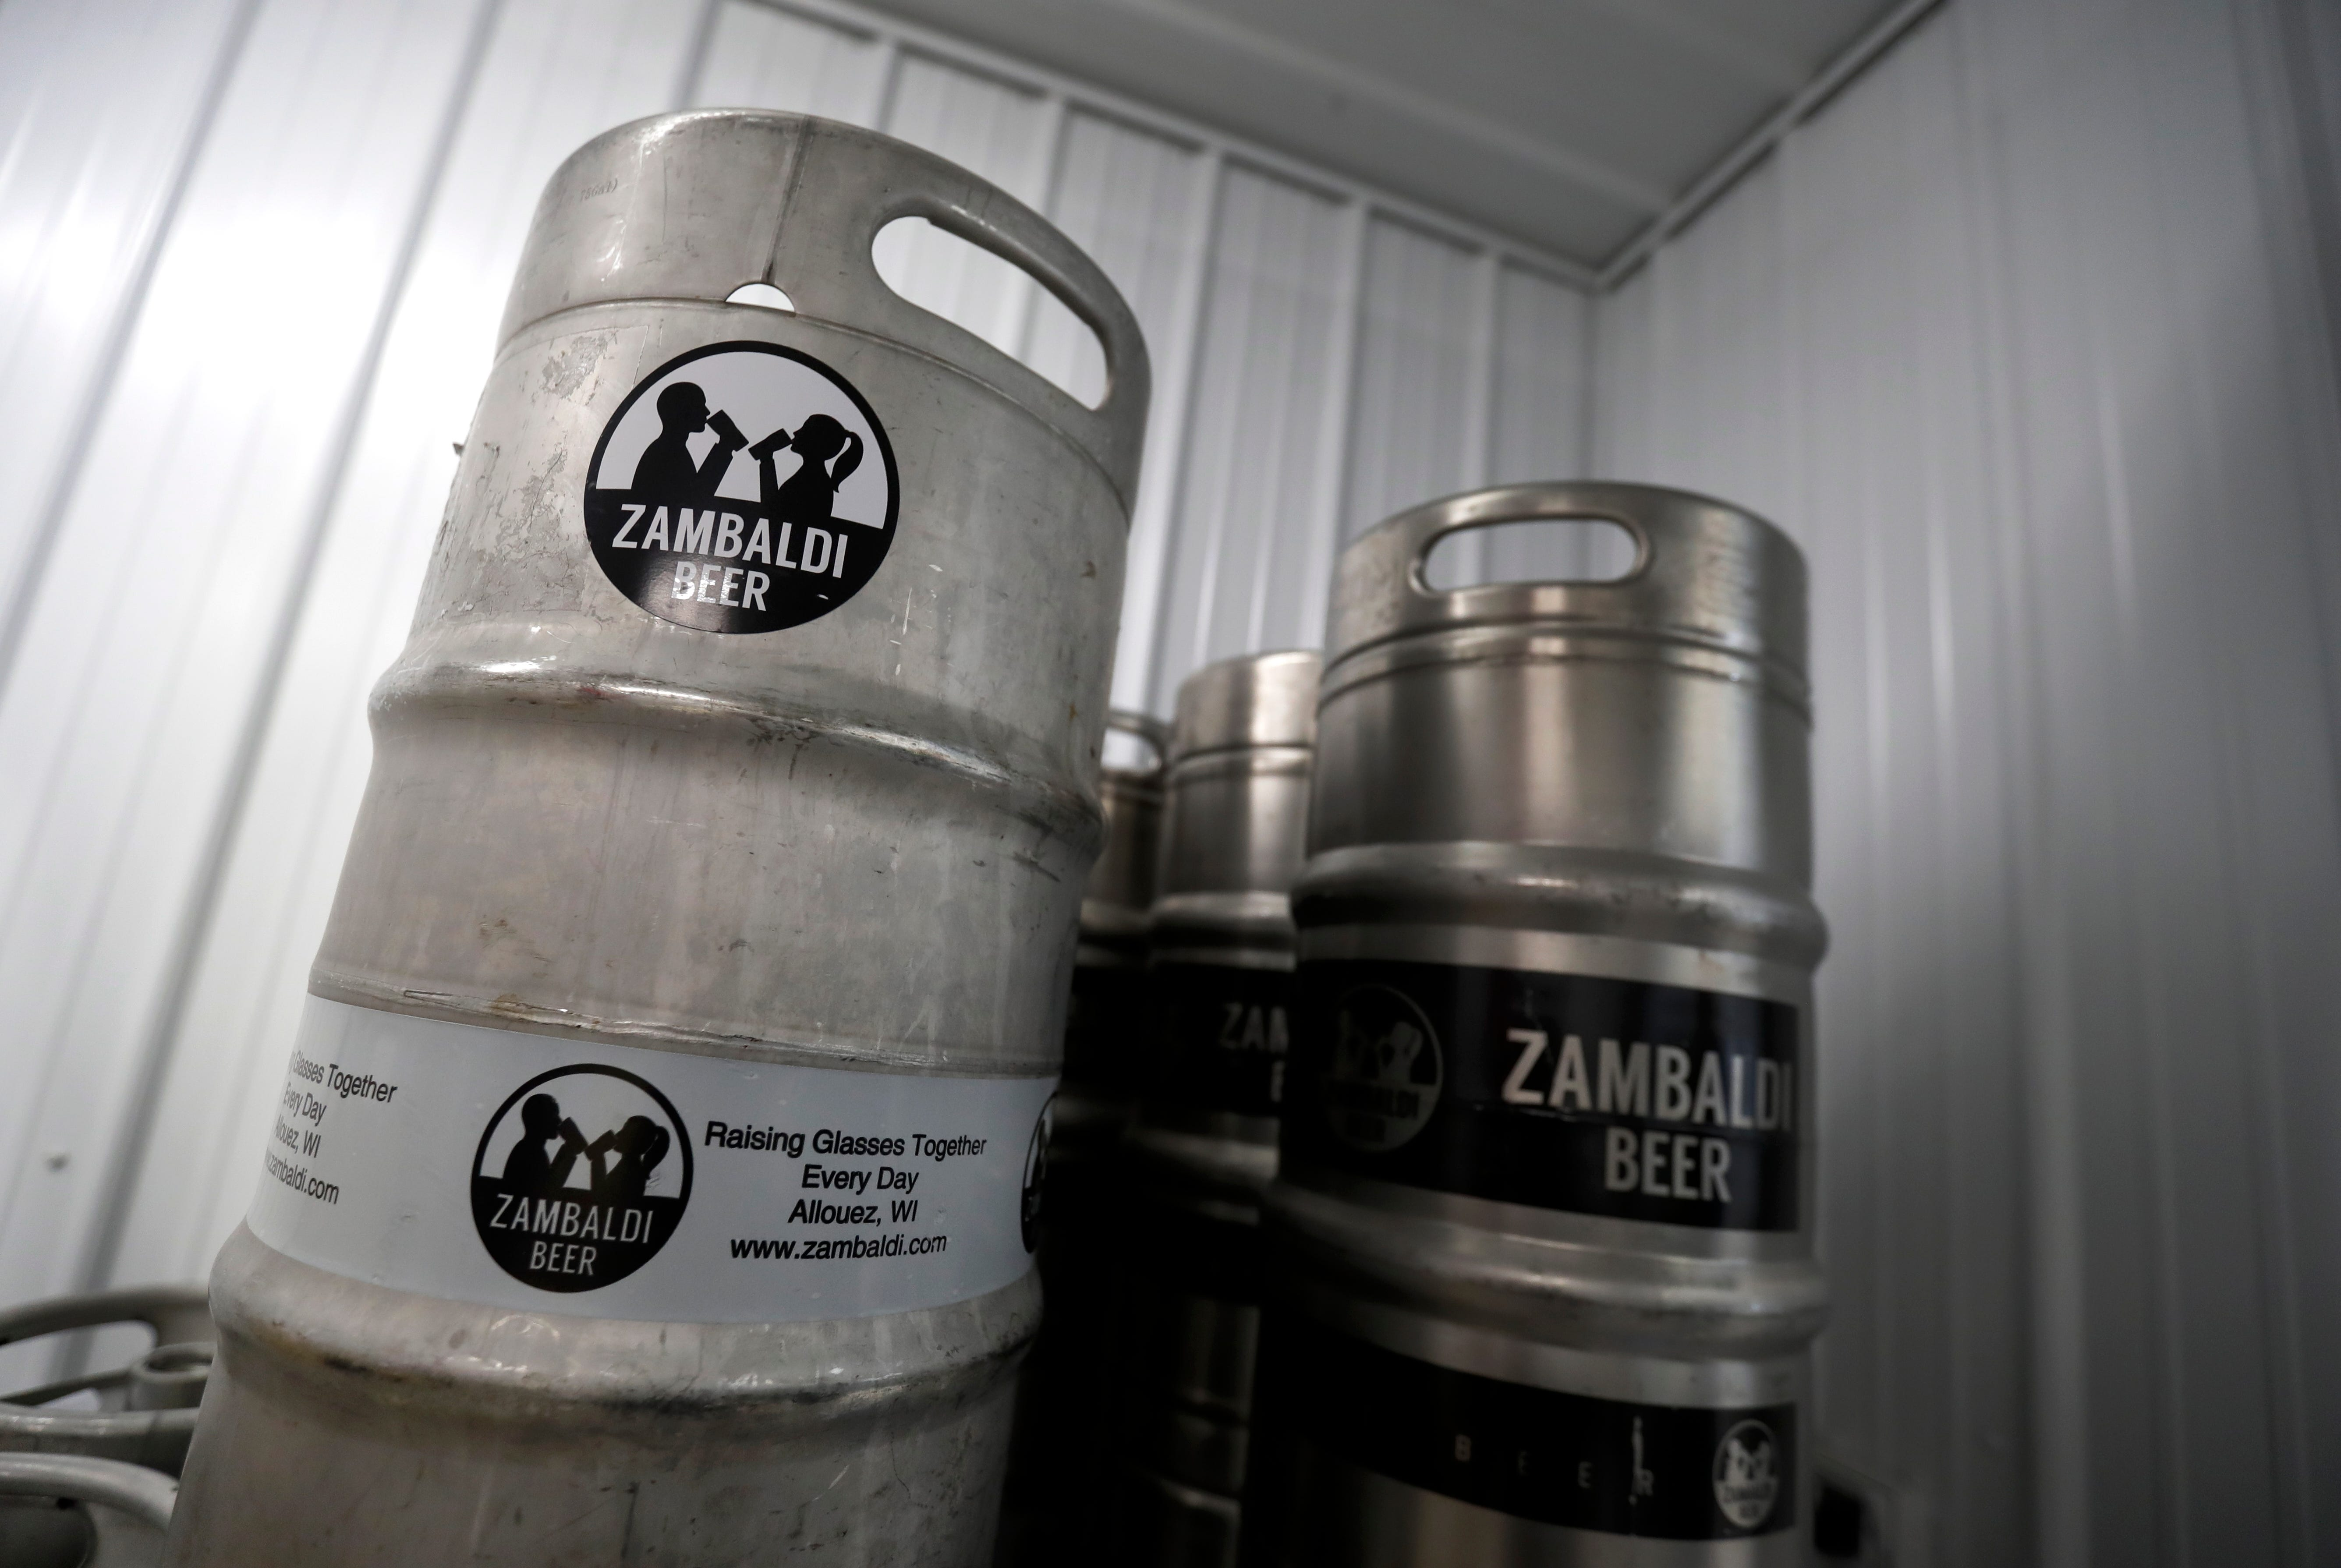 Kegs of Zambaldi Beer are stacked in the newly opened brewery and taproom  in Allouez.